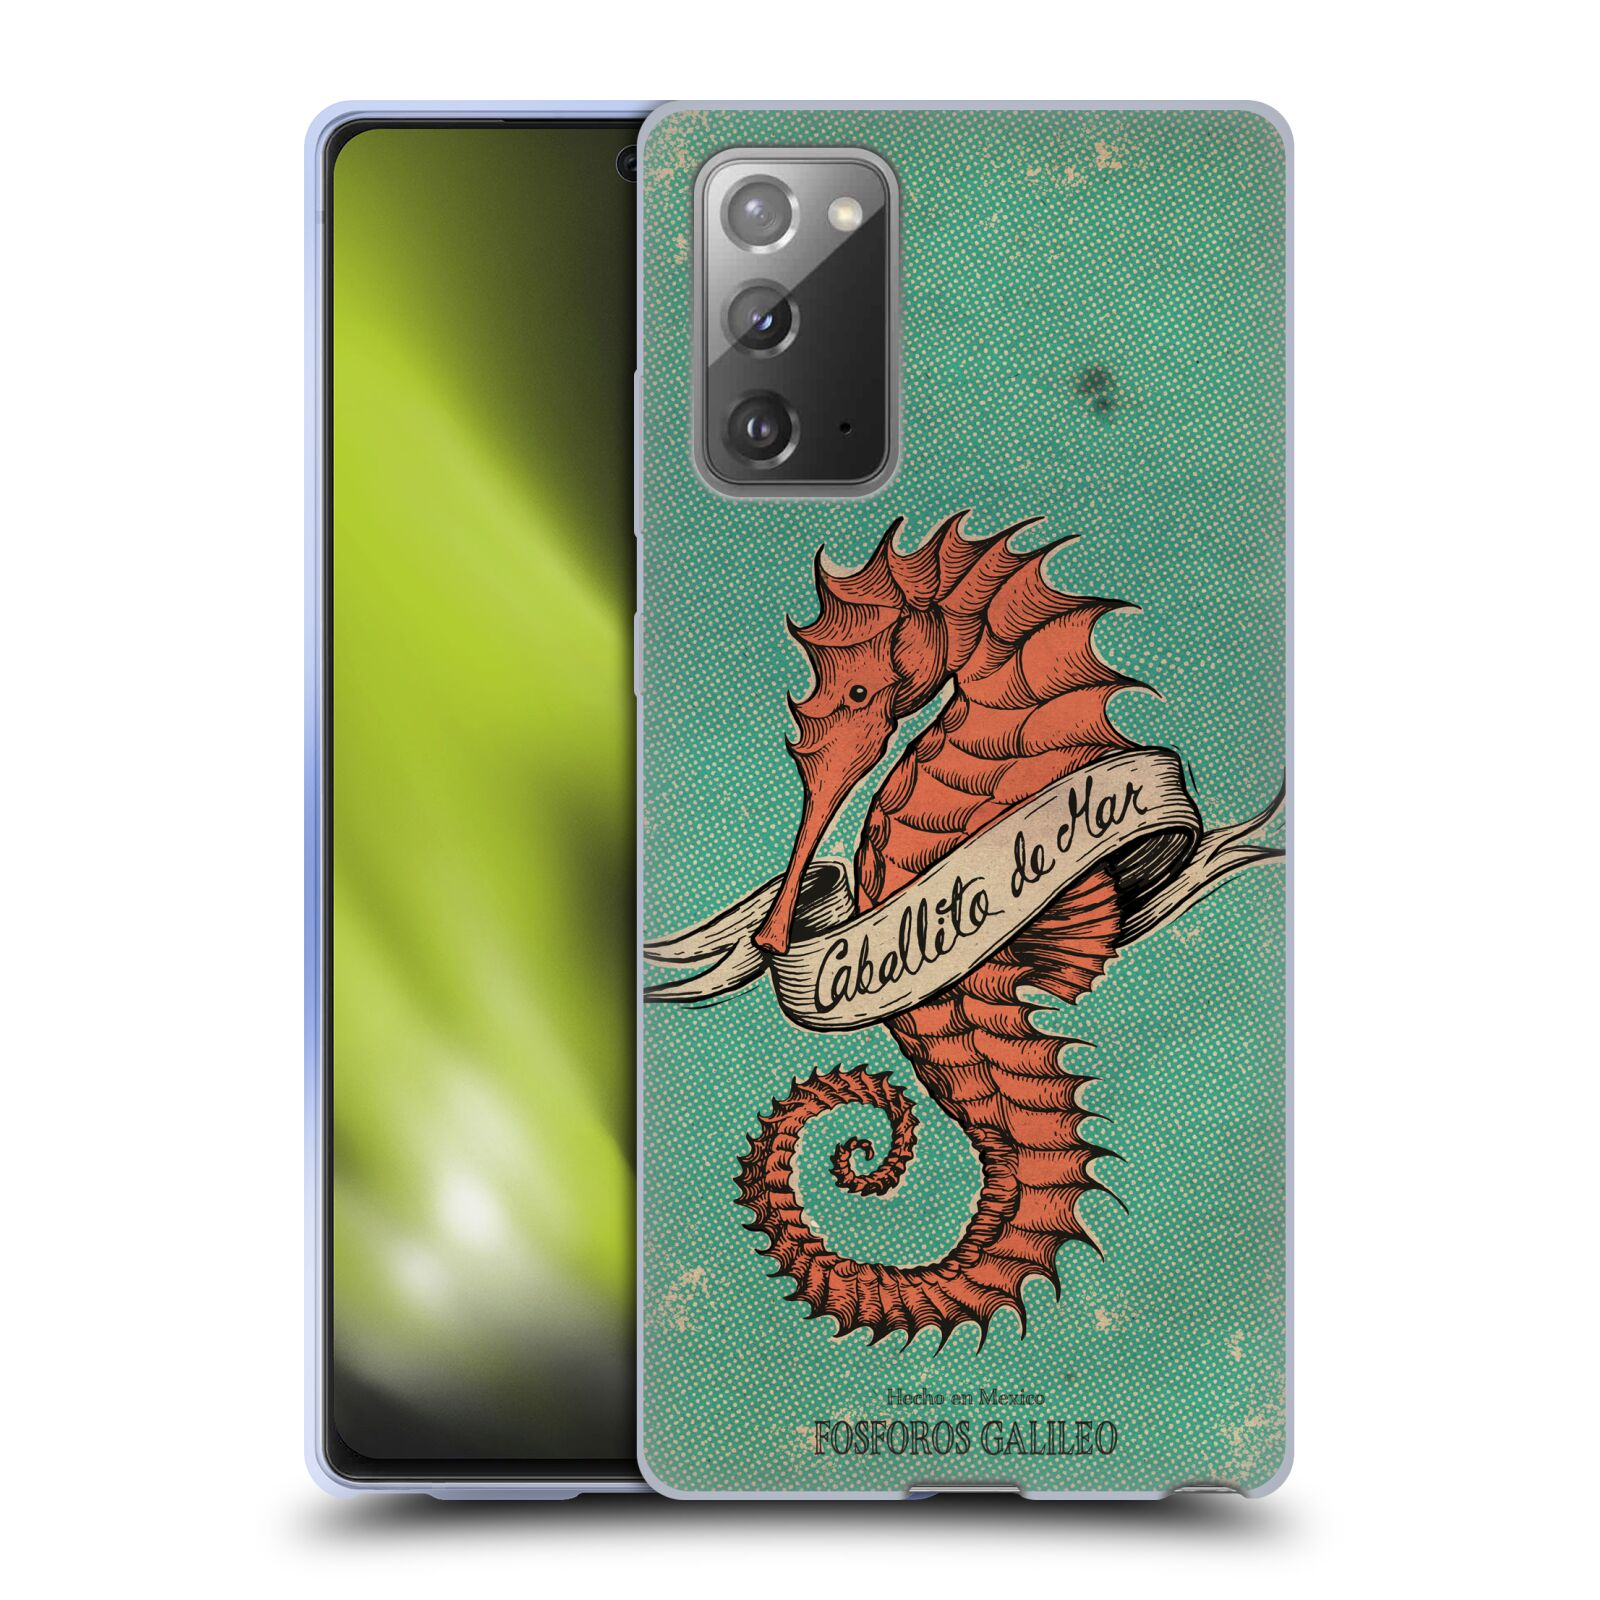 Official Fosforos Galileo Diseños Caballito De Mar Gel Case for Samsung Galaxy Note20 / 5G